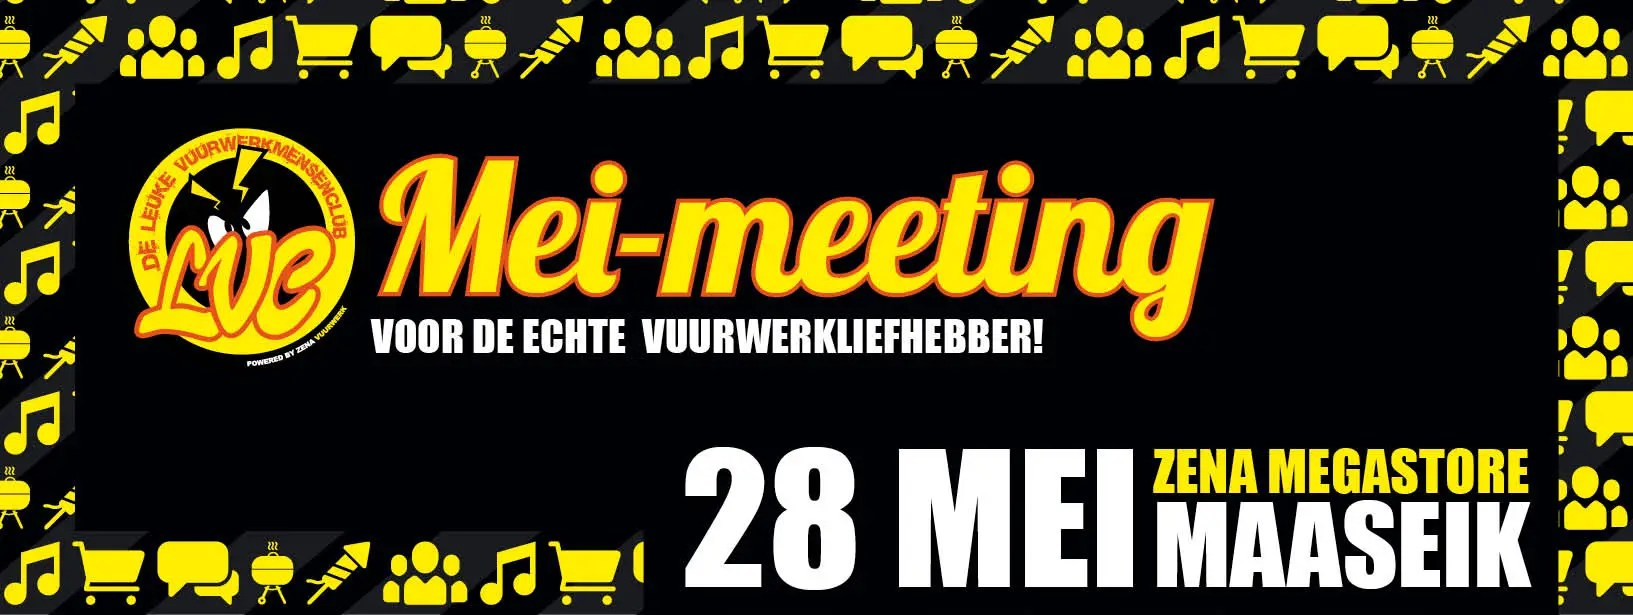 Mei meeting 2017